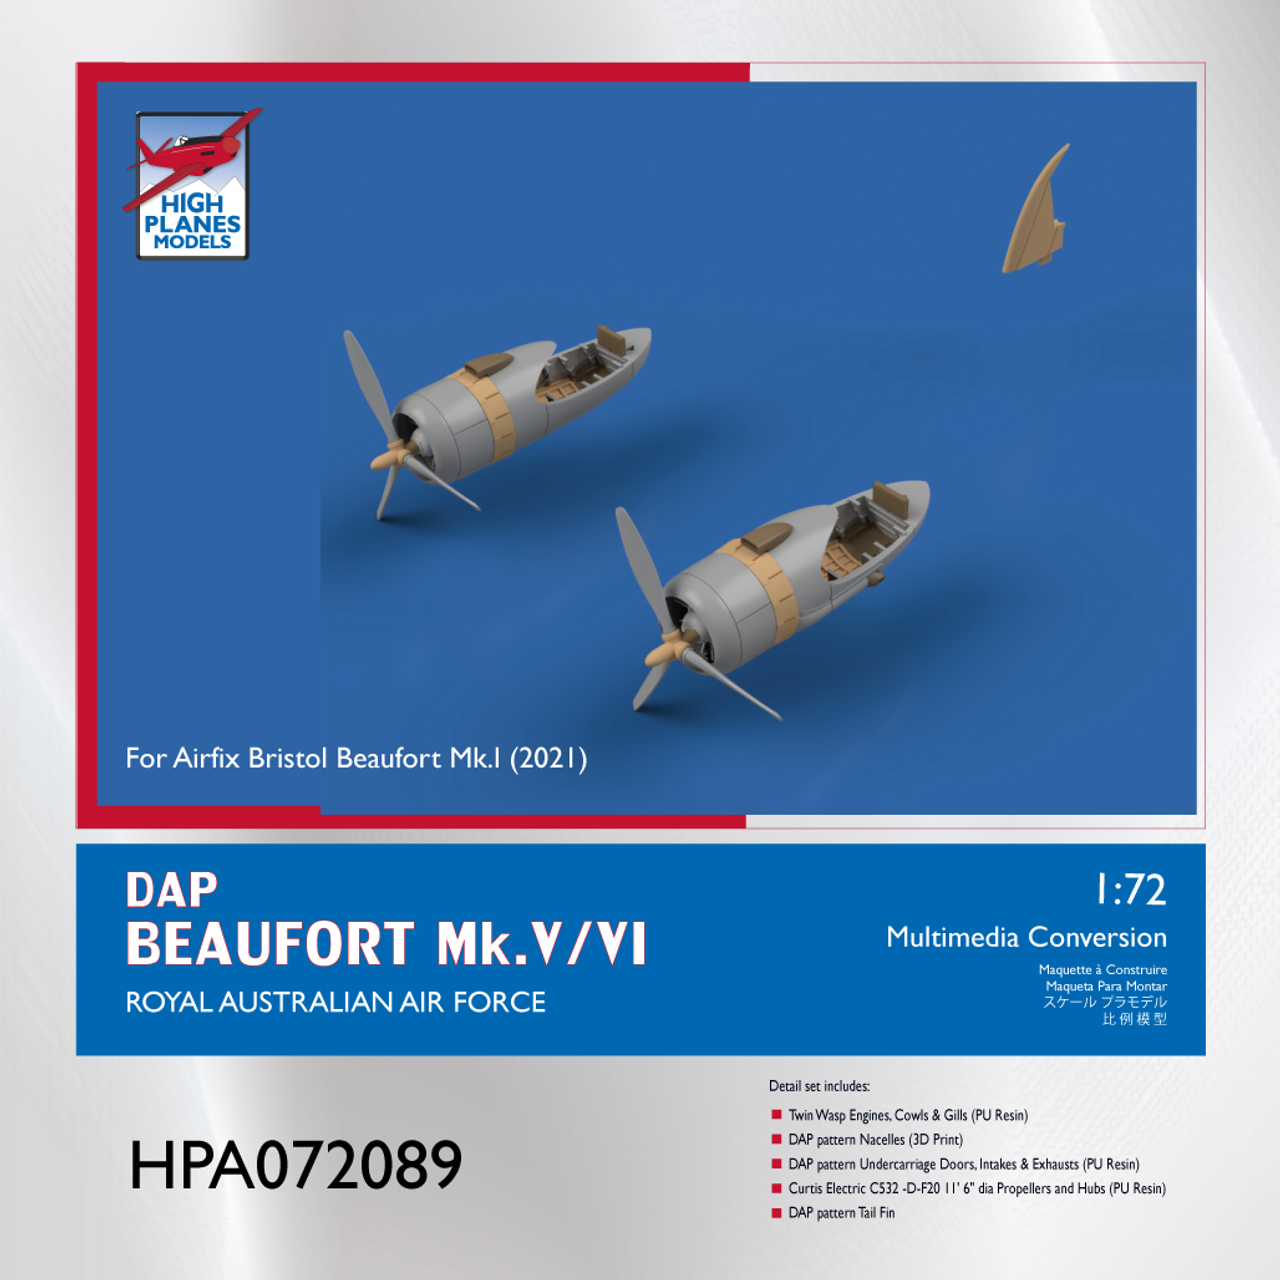 High Planes DAP Beaufort Mk.V/VI Conversion Accessories 1:72 (HPA072089)